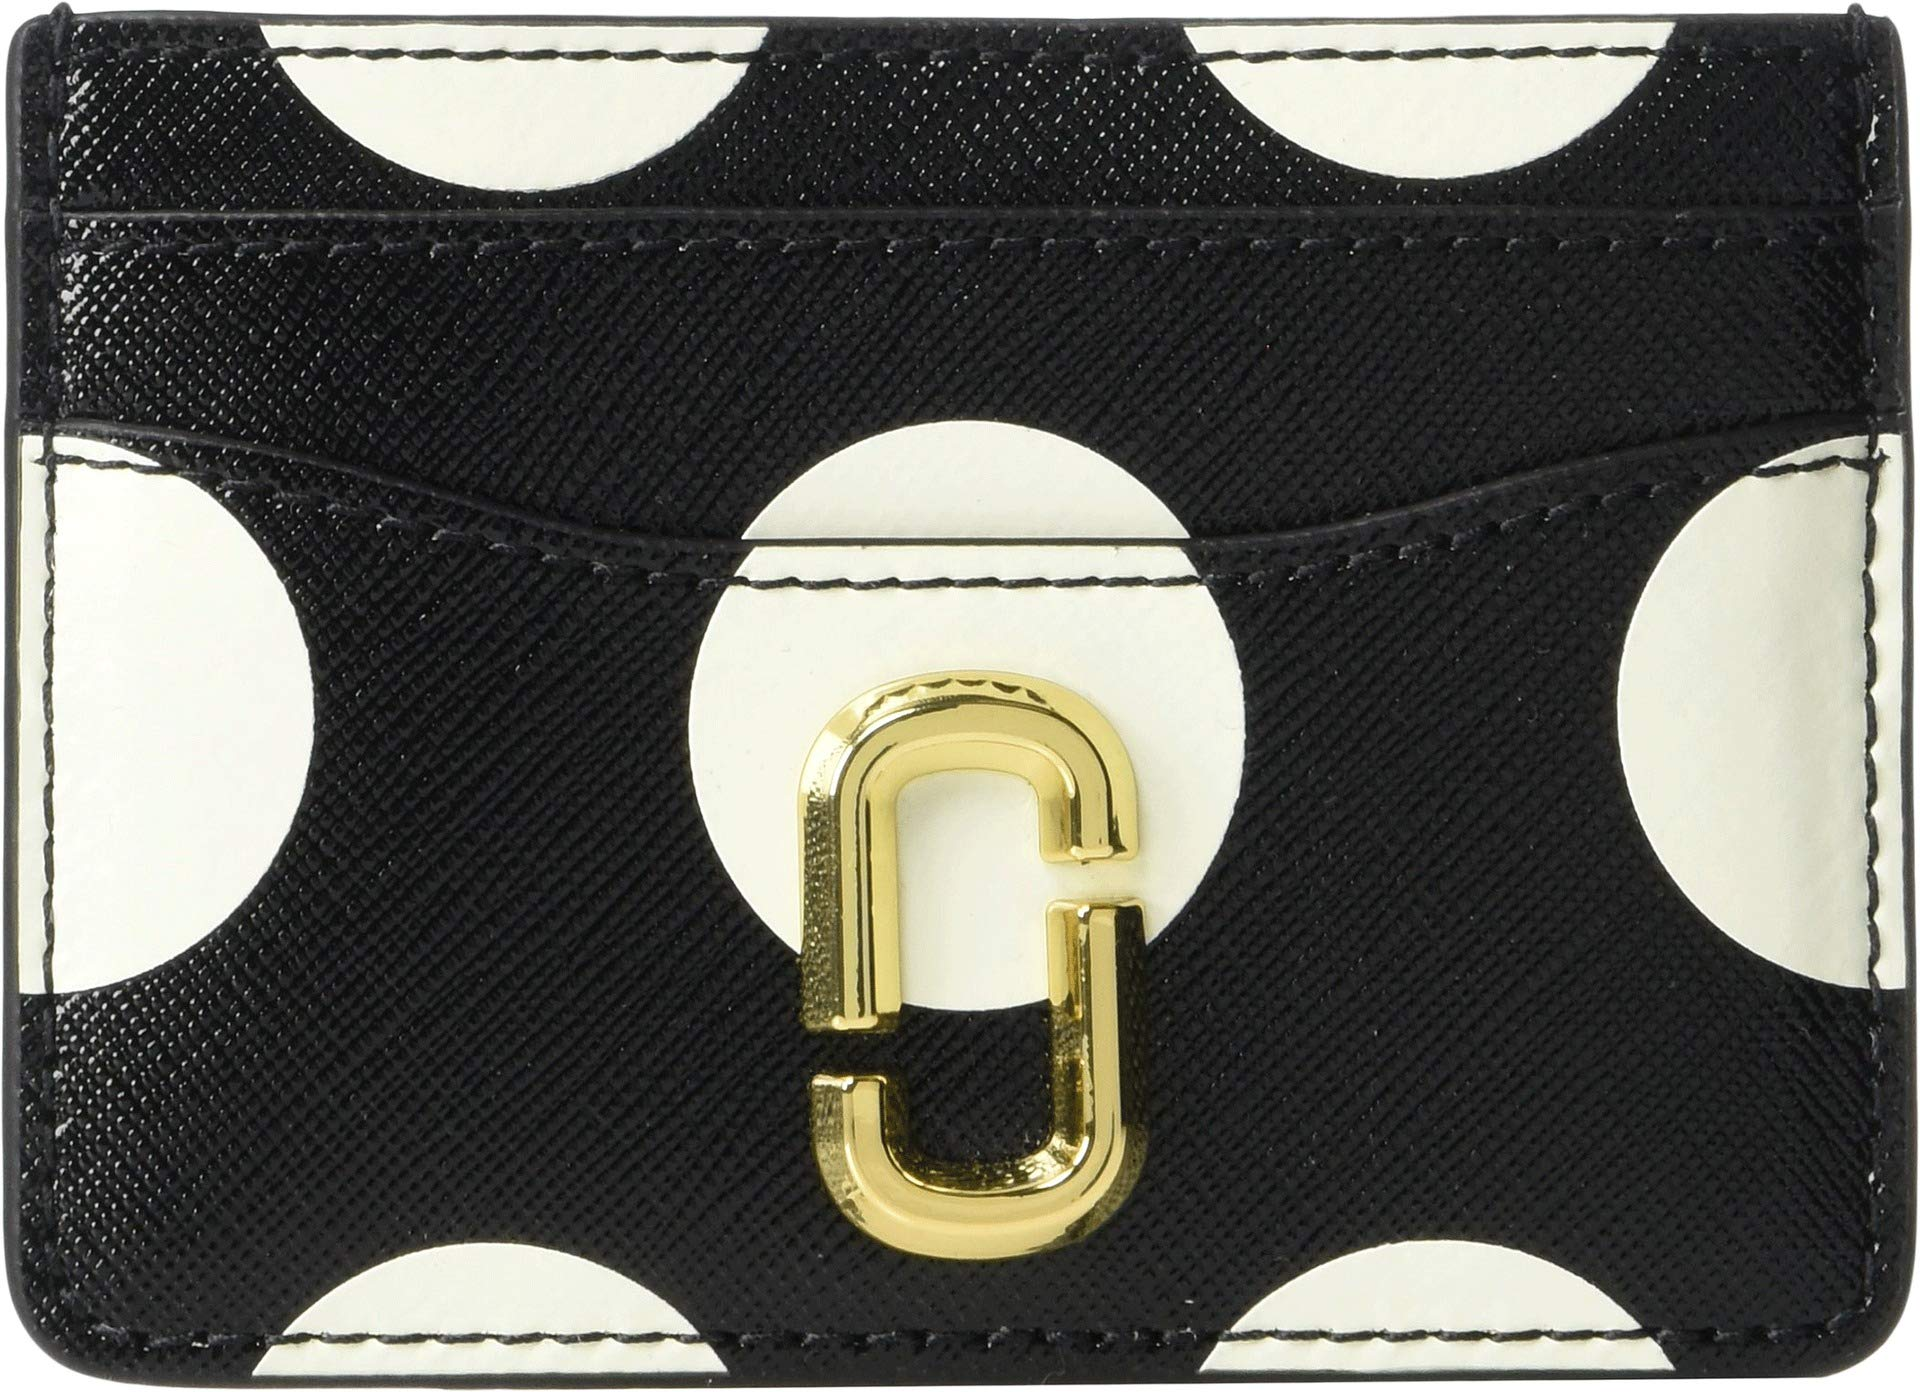 Marc Jacobs Women's Snapshot Card Case, Black Multi, One Size